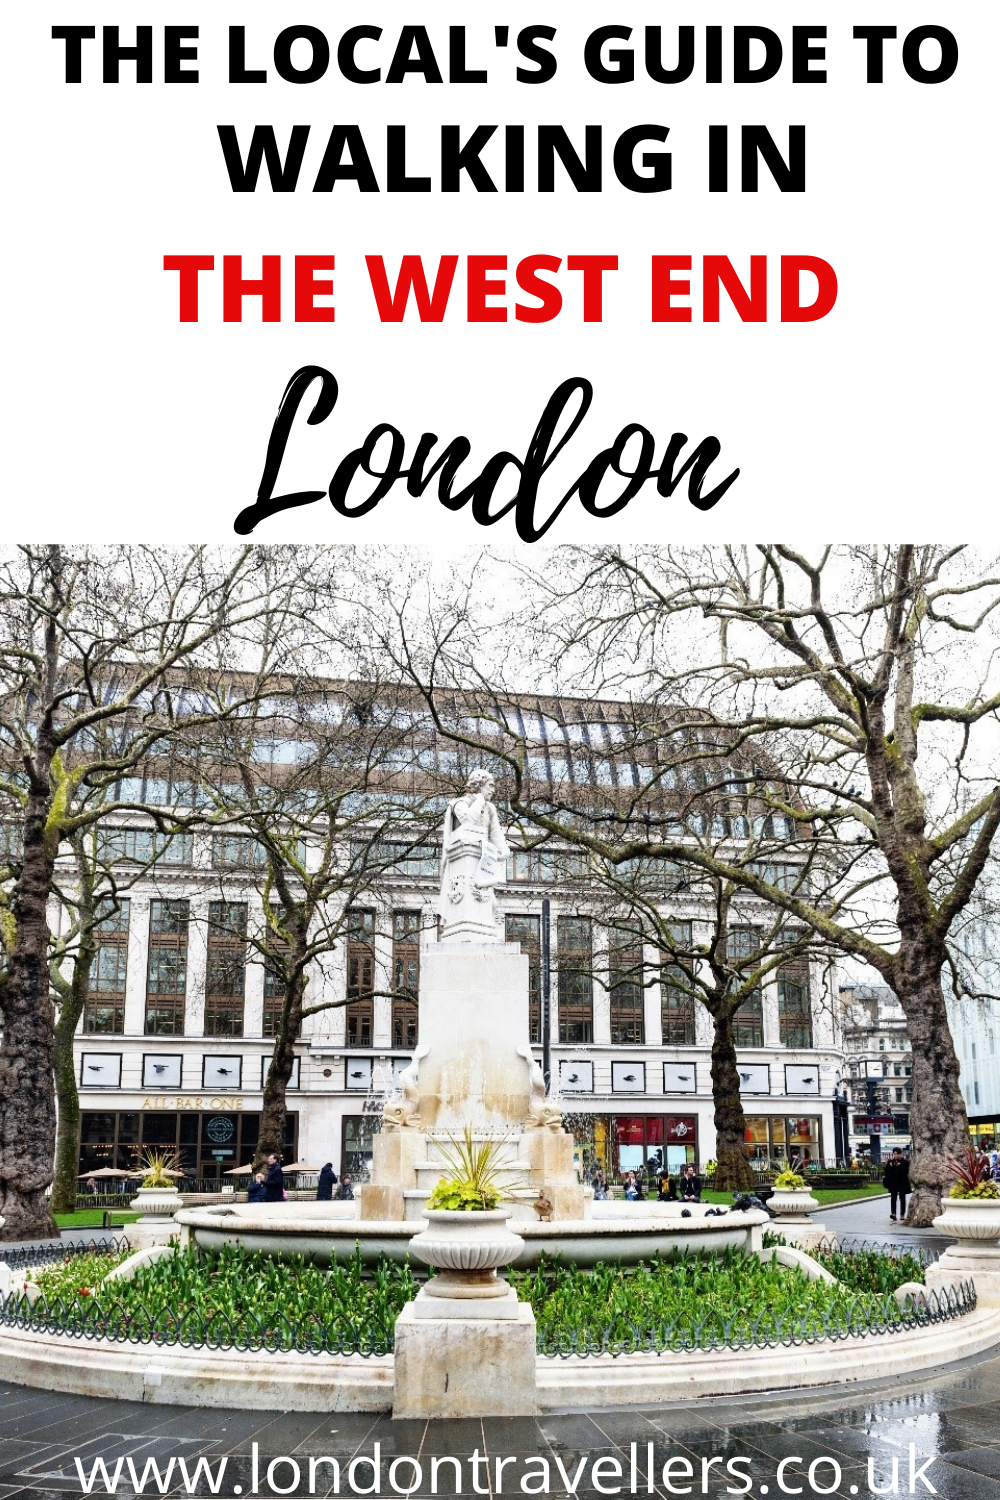 Walking in the West End London